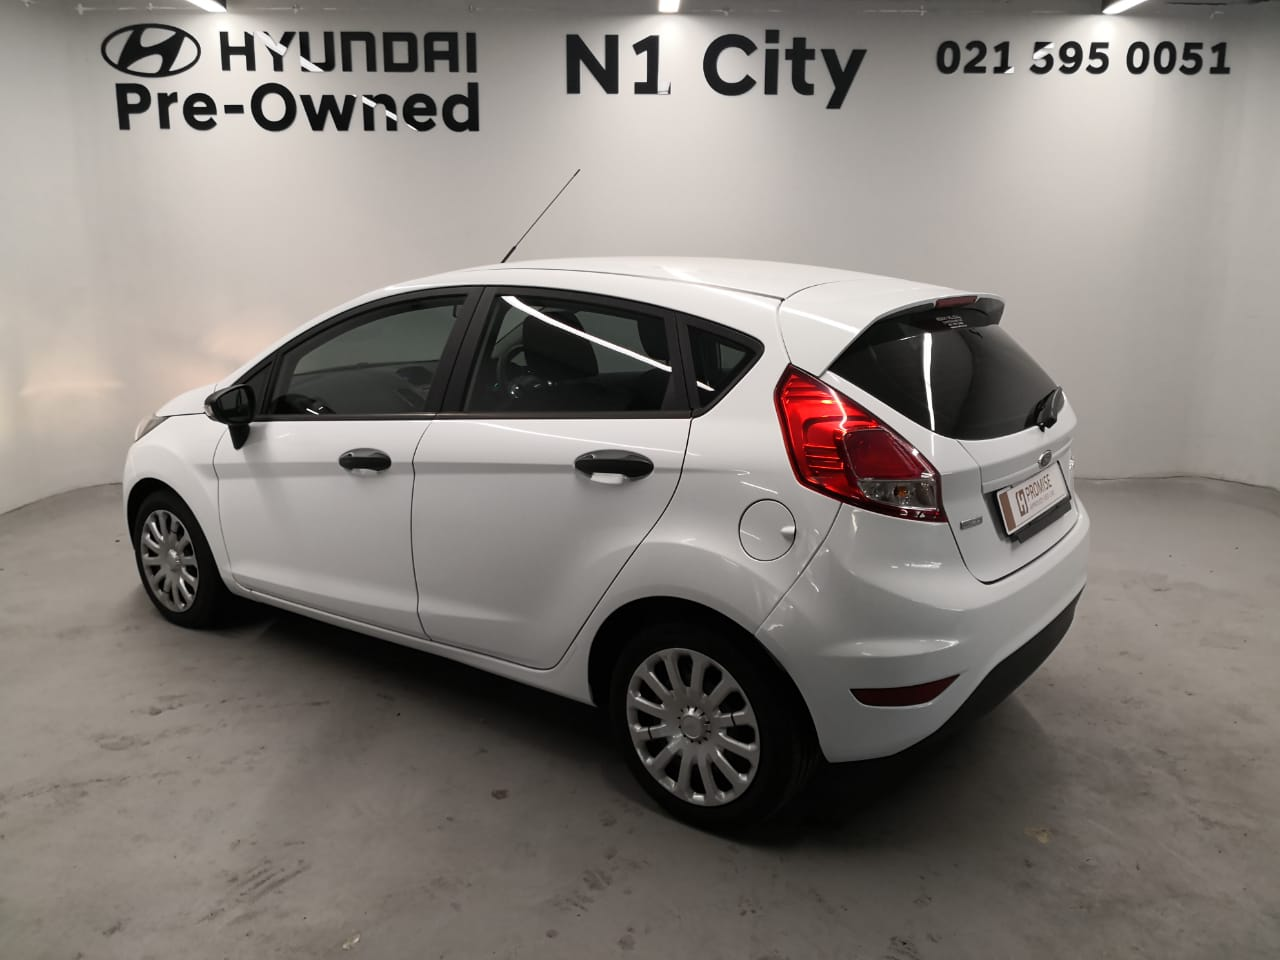 FORD 1.4 AMBIENTE 5 Dr Cape Town 2326507